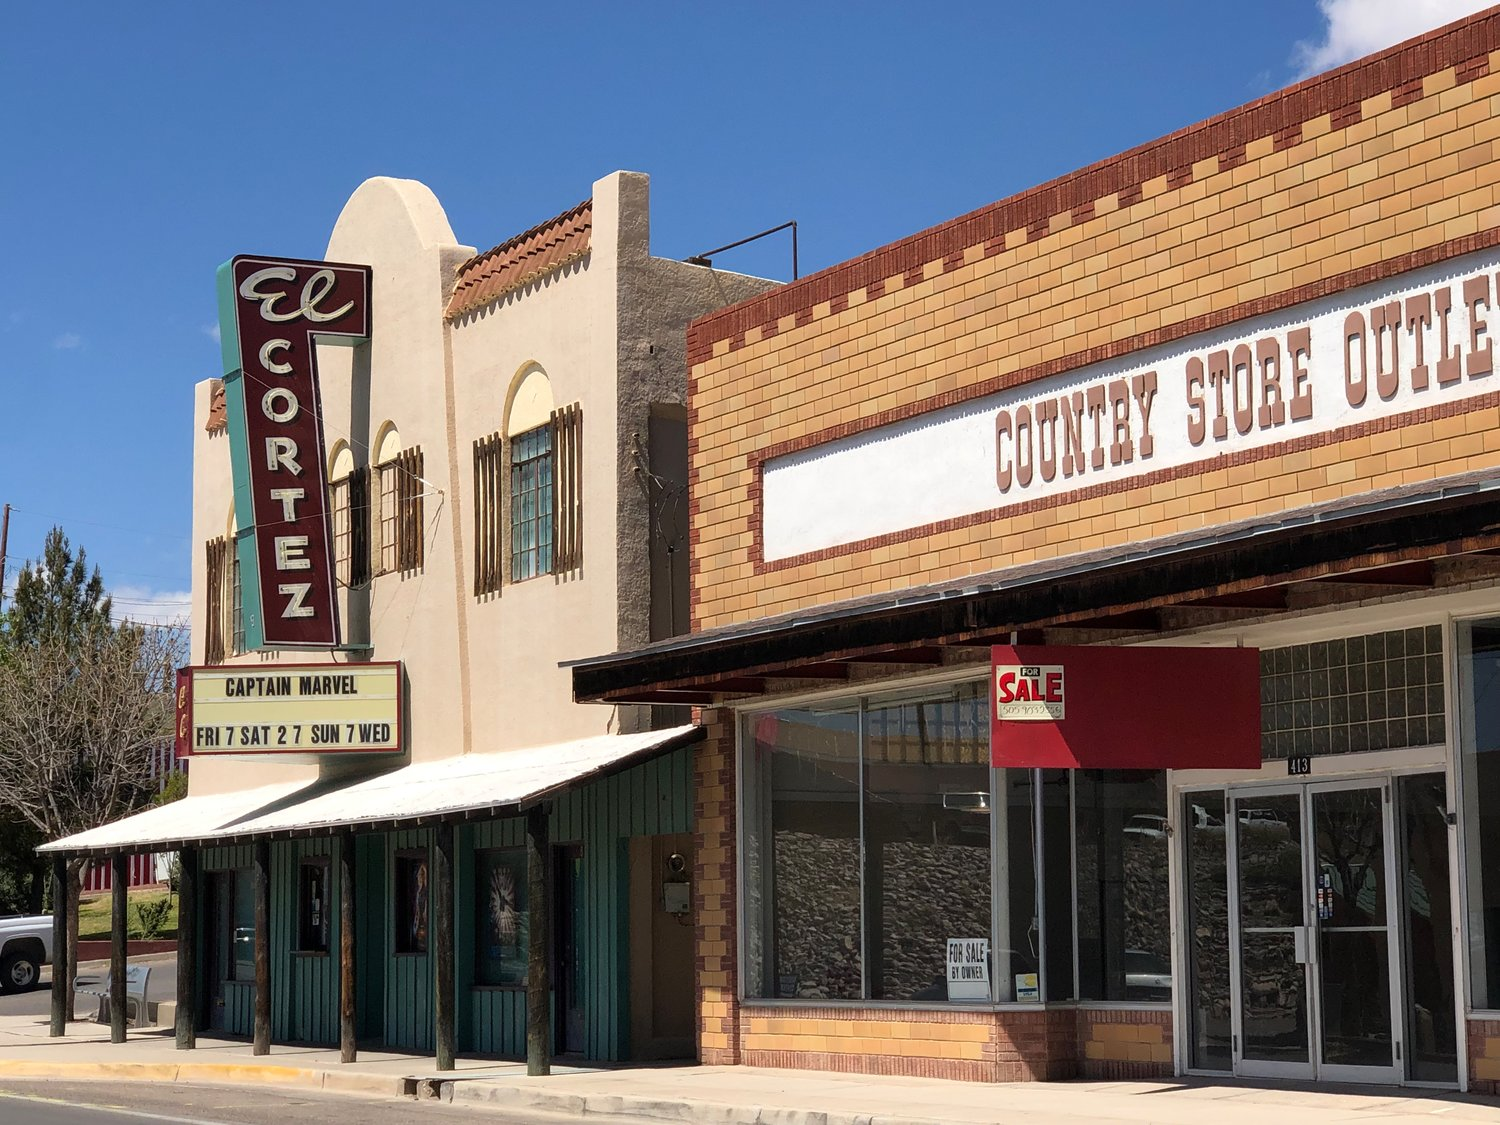 El Cortez Theater in Truth or Consequences was built in 1935 and plays current movies on a weekly basis.